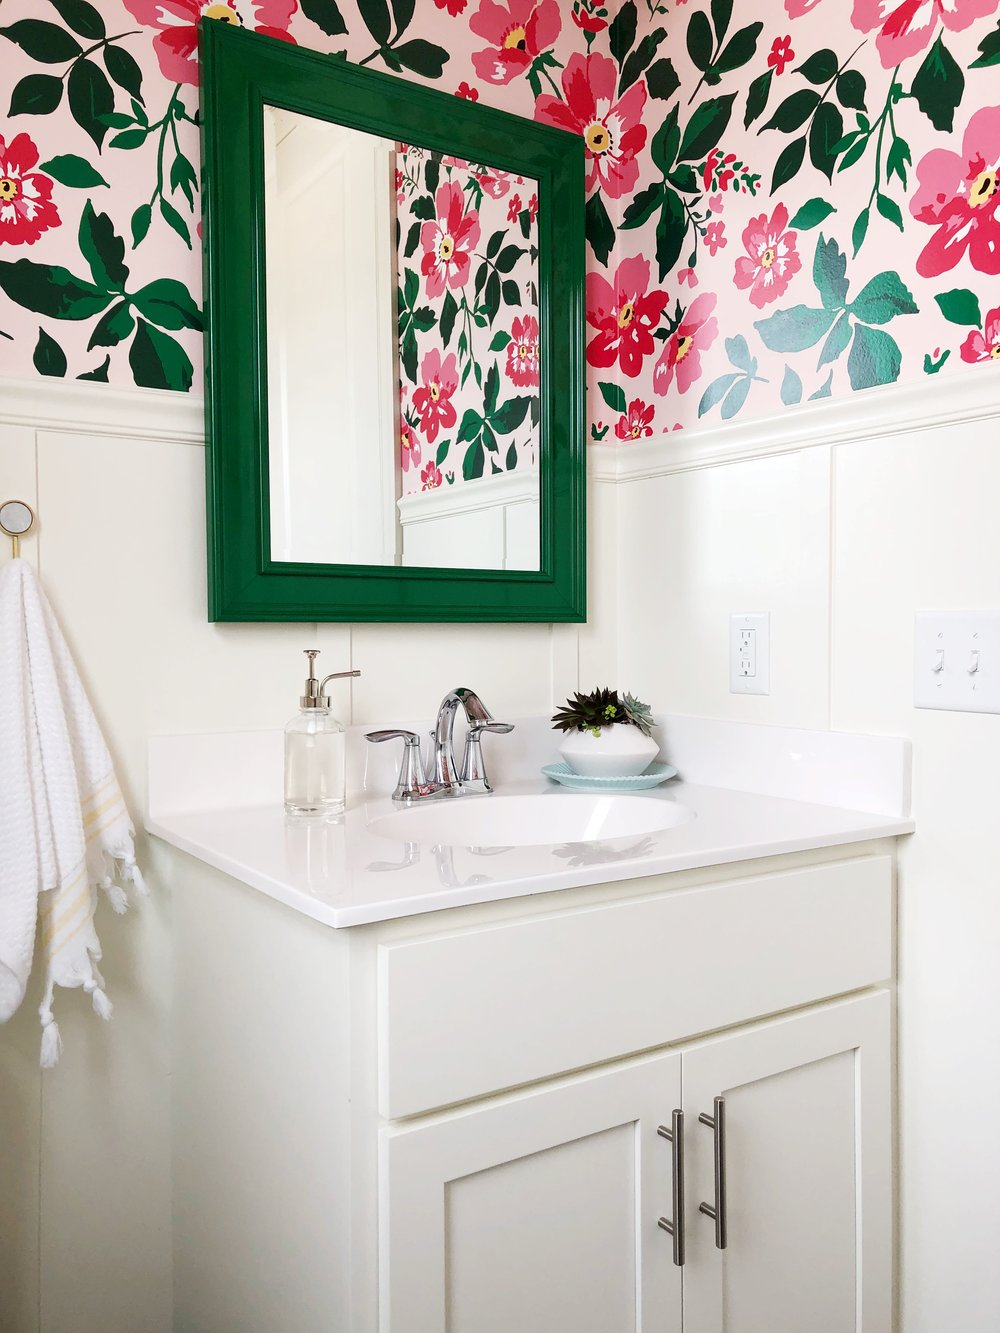 Wallpaper Bathroom with Spoonflower custom wallpaper. Board and Batten Powder Room.